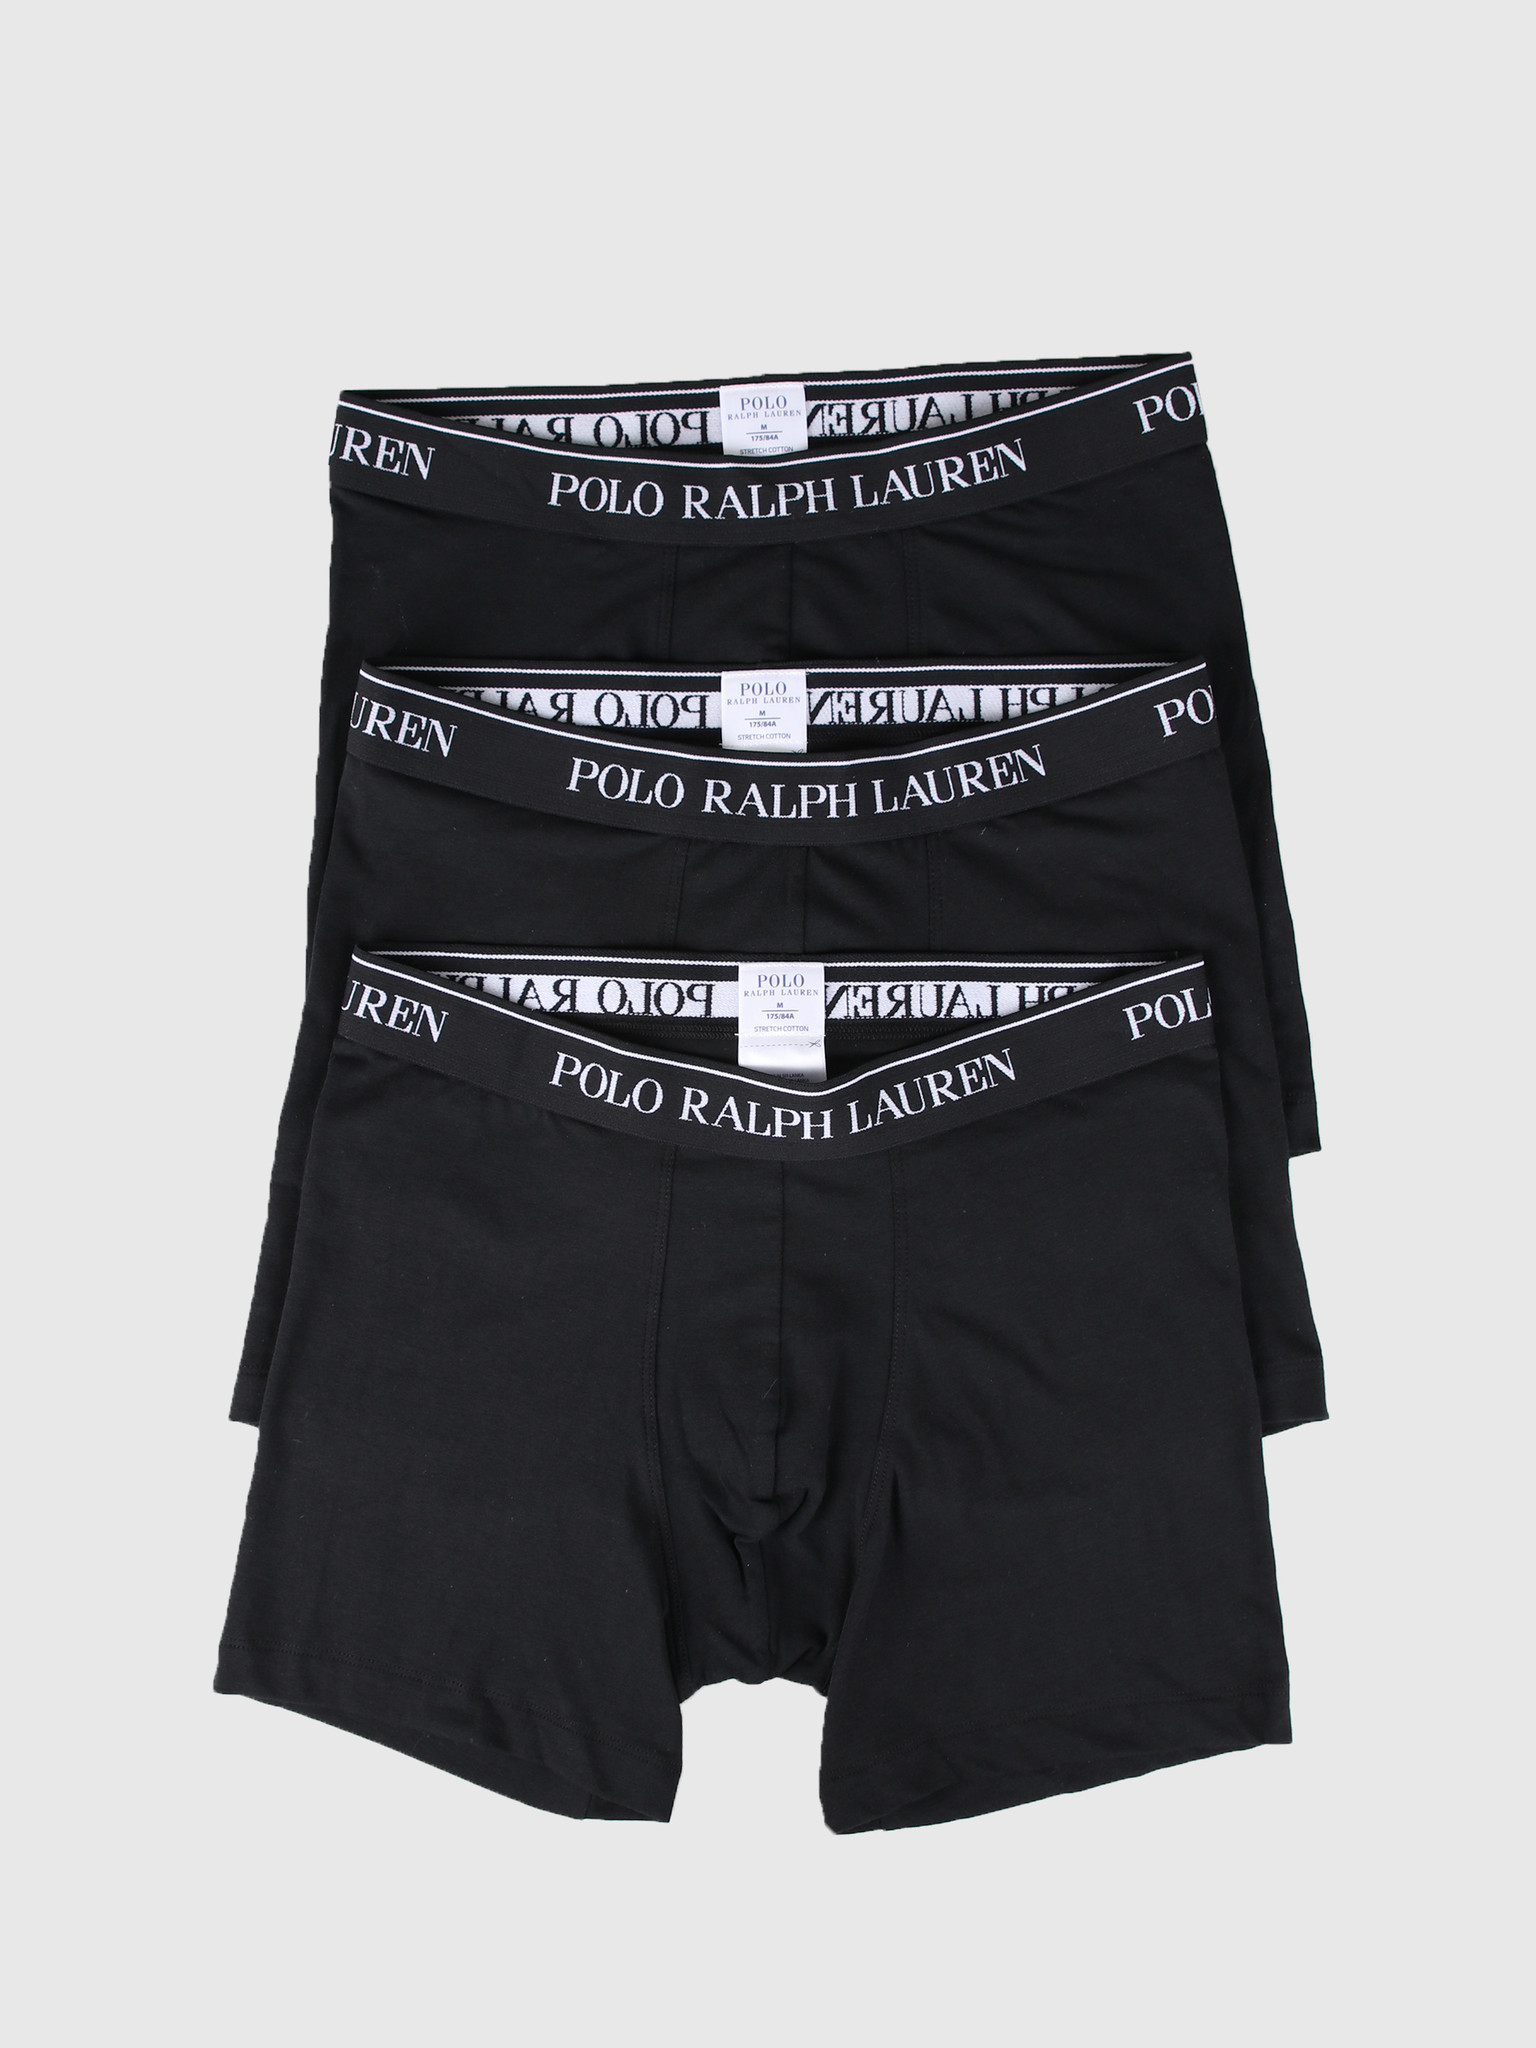 Polo Ralph Lauren Polo Ralph Lauren 3 Pack Boxer Brief Black 714621874003